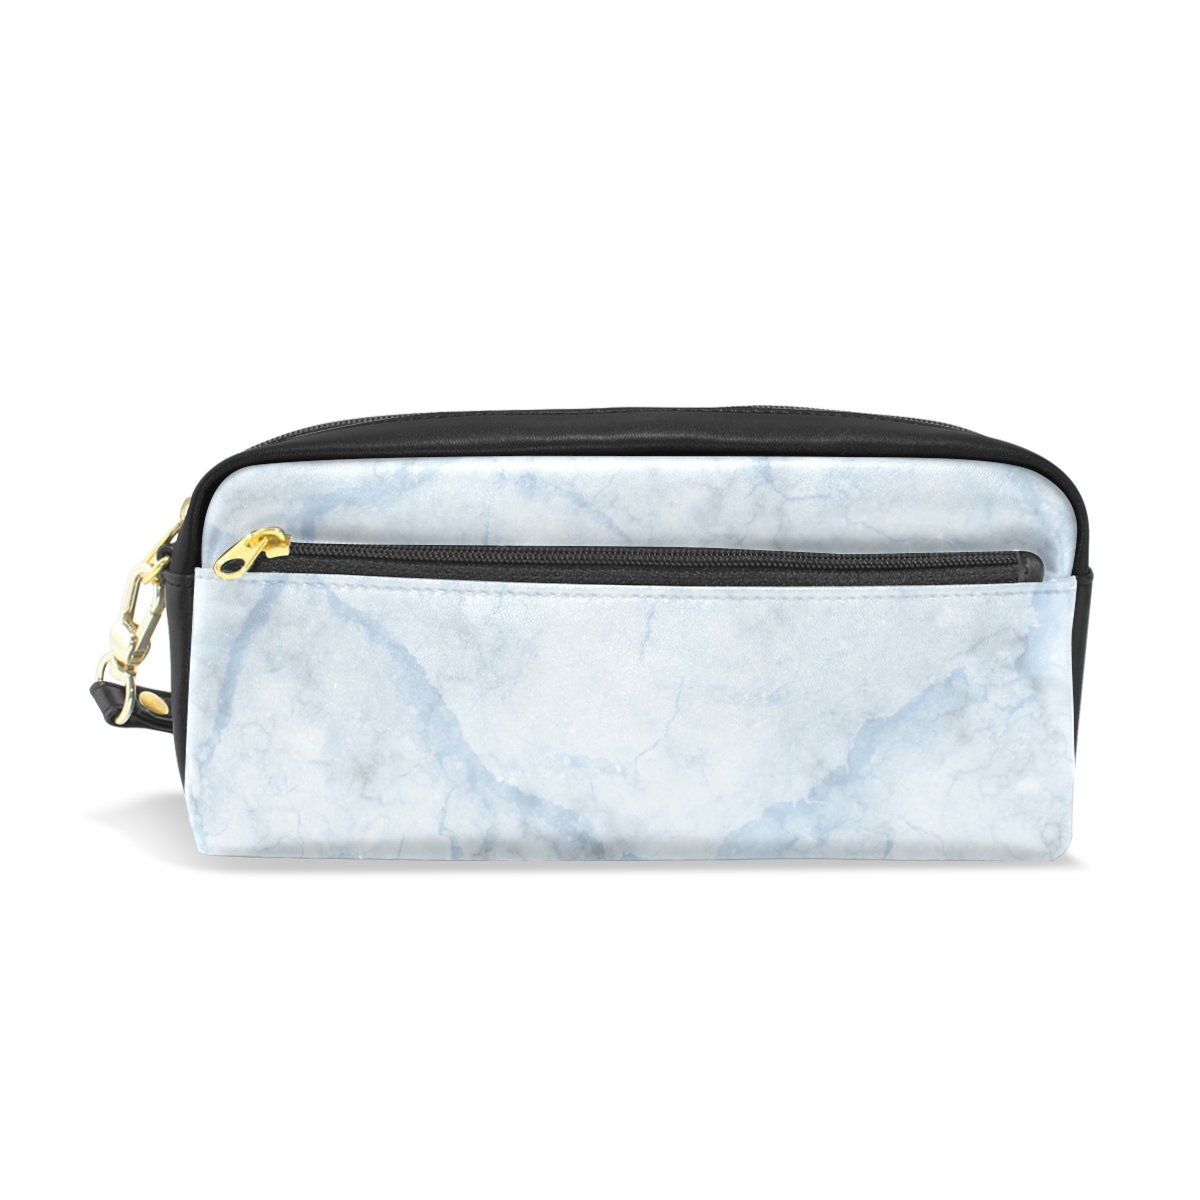 Pencil Case, Pen Bag Makeup Pouch Wallet Large Capacity Marble Waterproof of Students or Women FFY GO